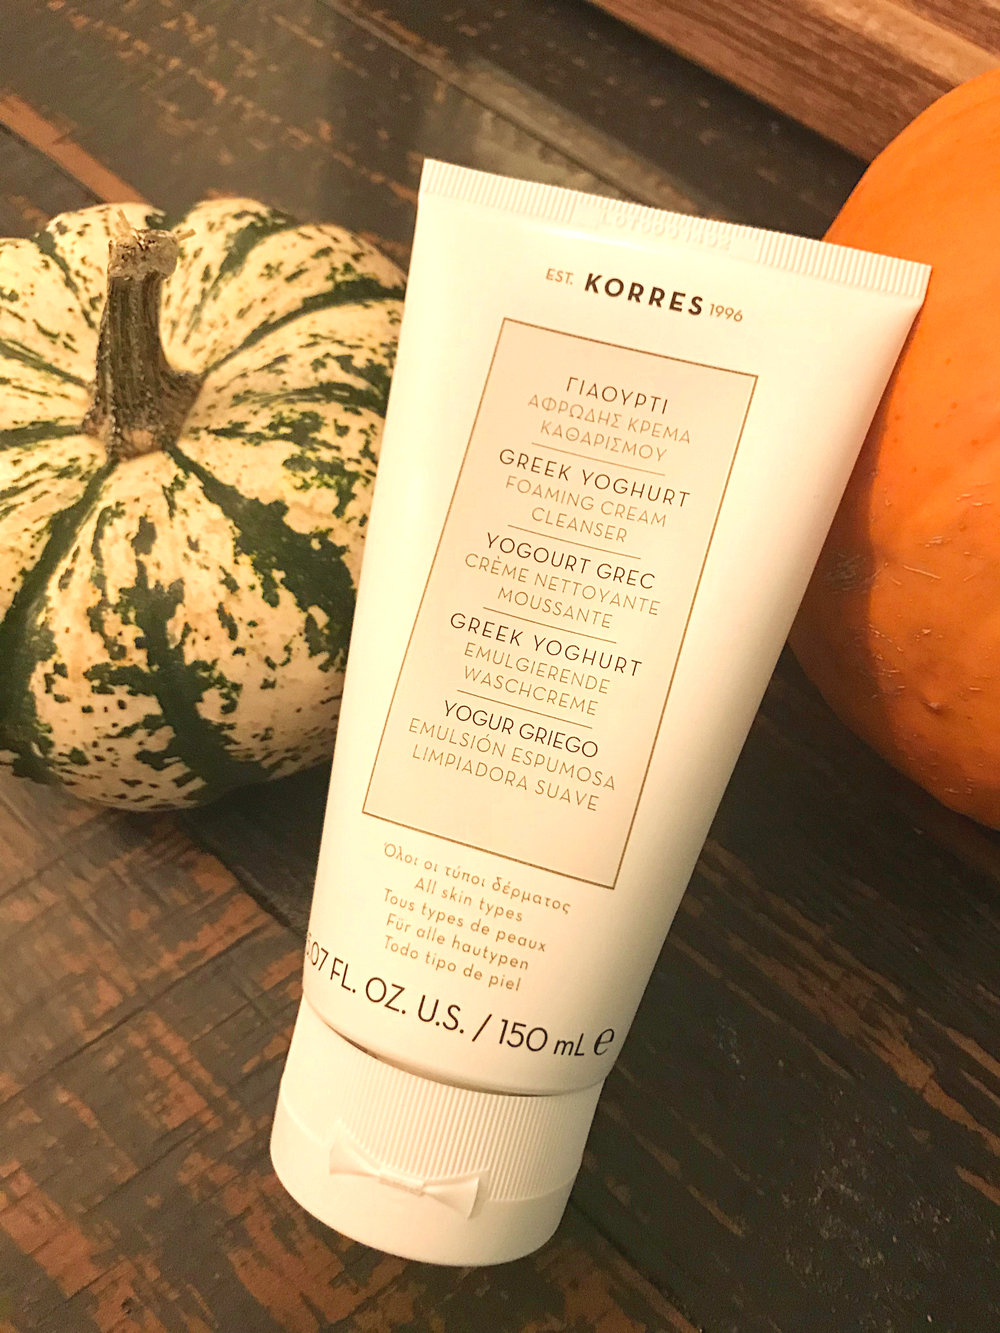 KORRES Greek Yoghurt Cleanser - It smells so good and a great cleanser for all skin types.